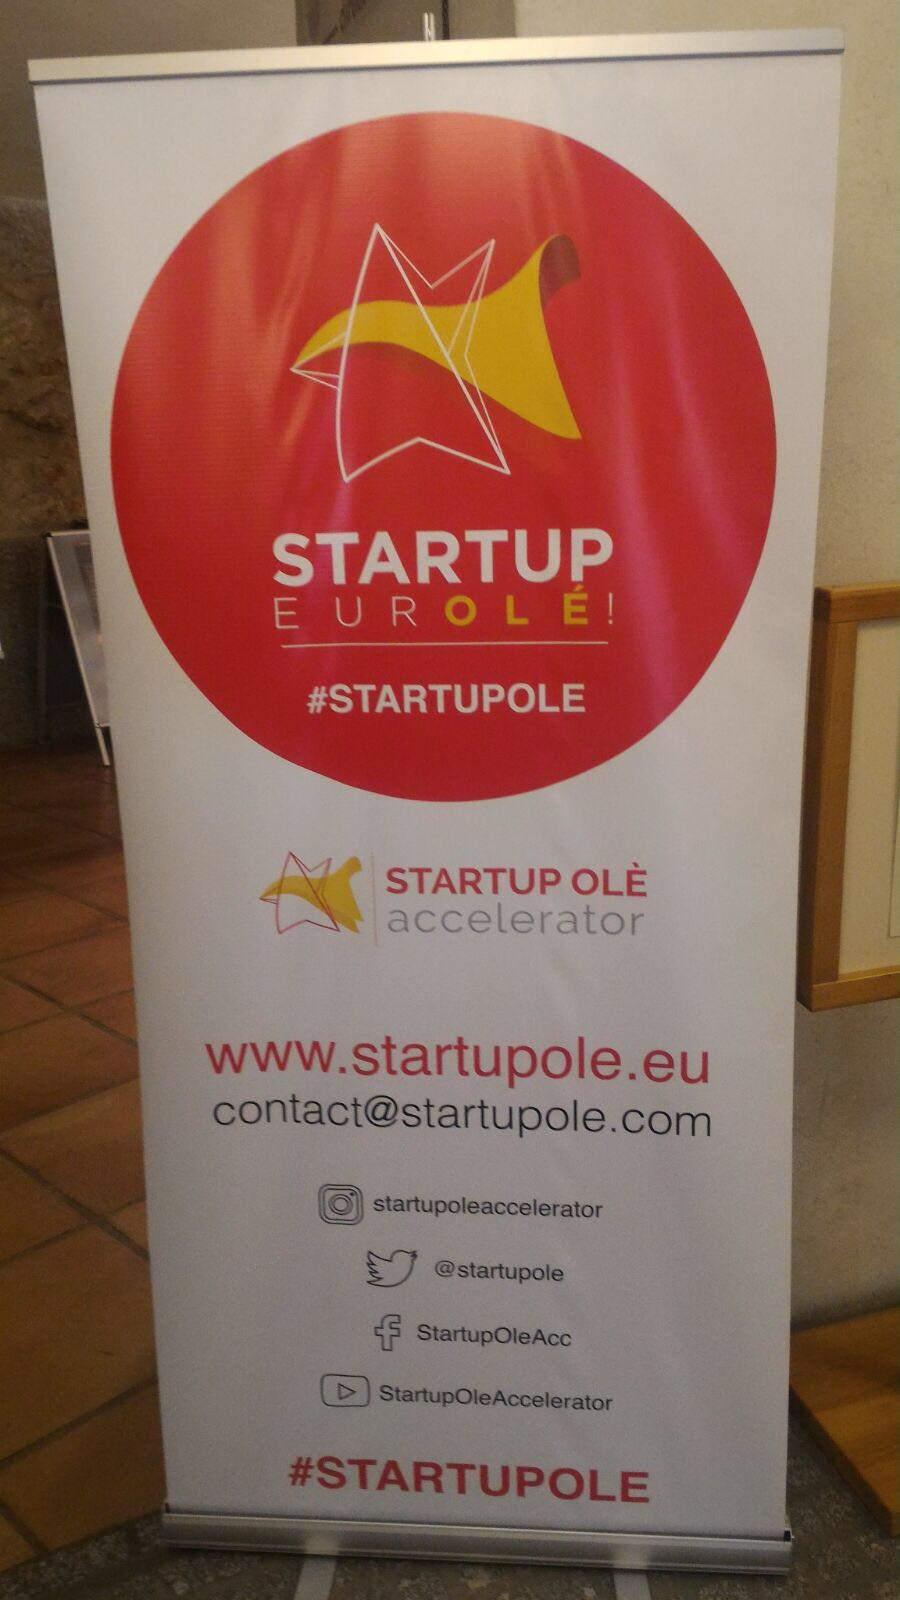 Startup Olé rollup